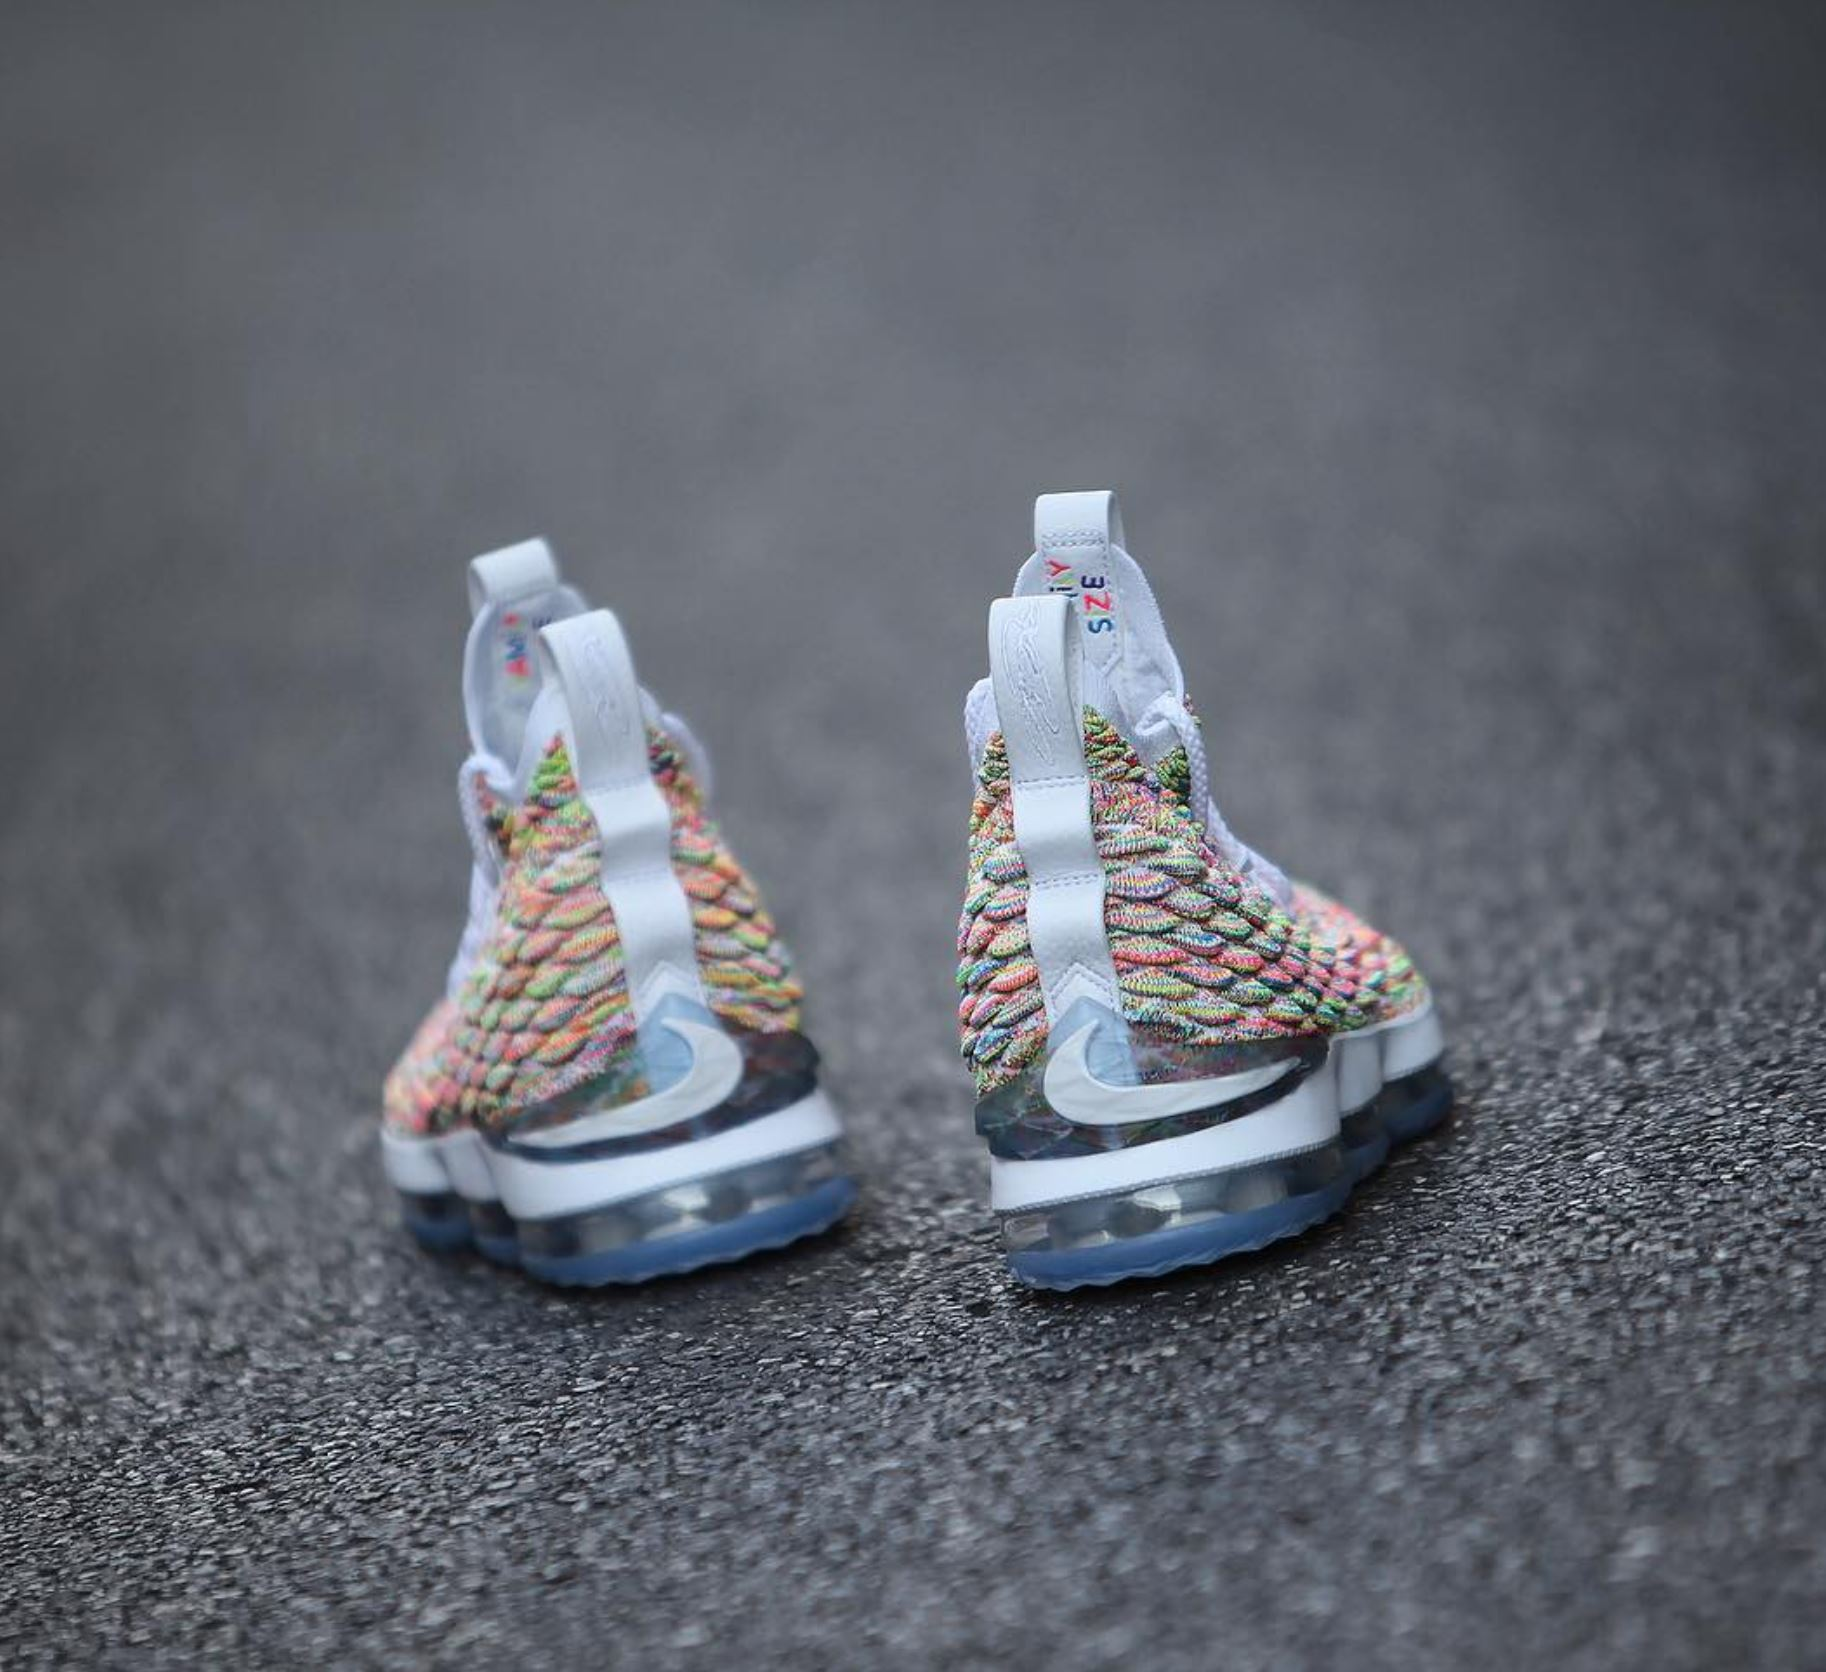 958c5ed0e6de nike lebron 15 fruity pebbles 13 - WearTesters